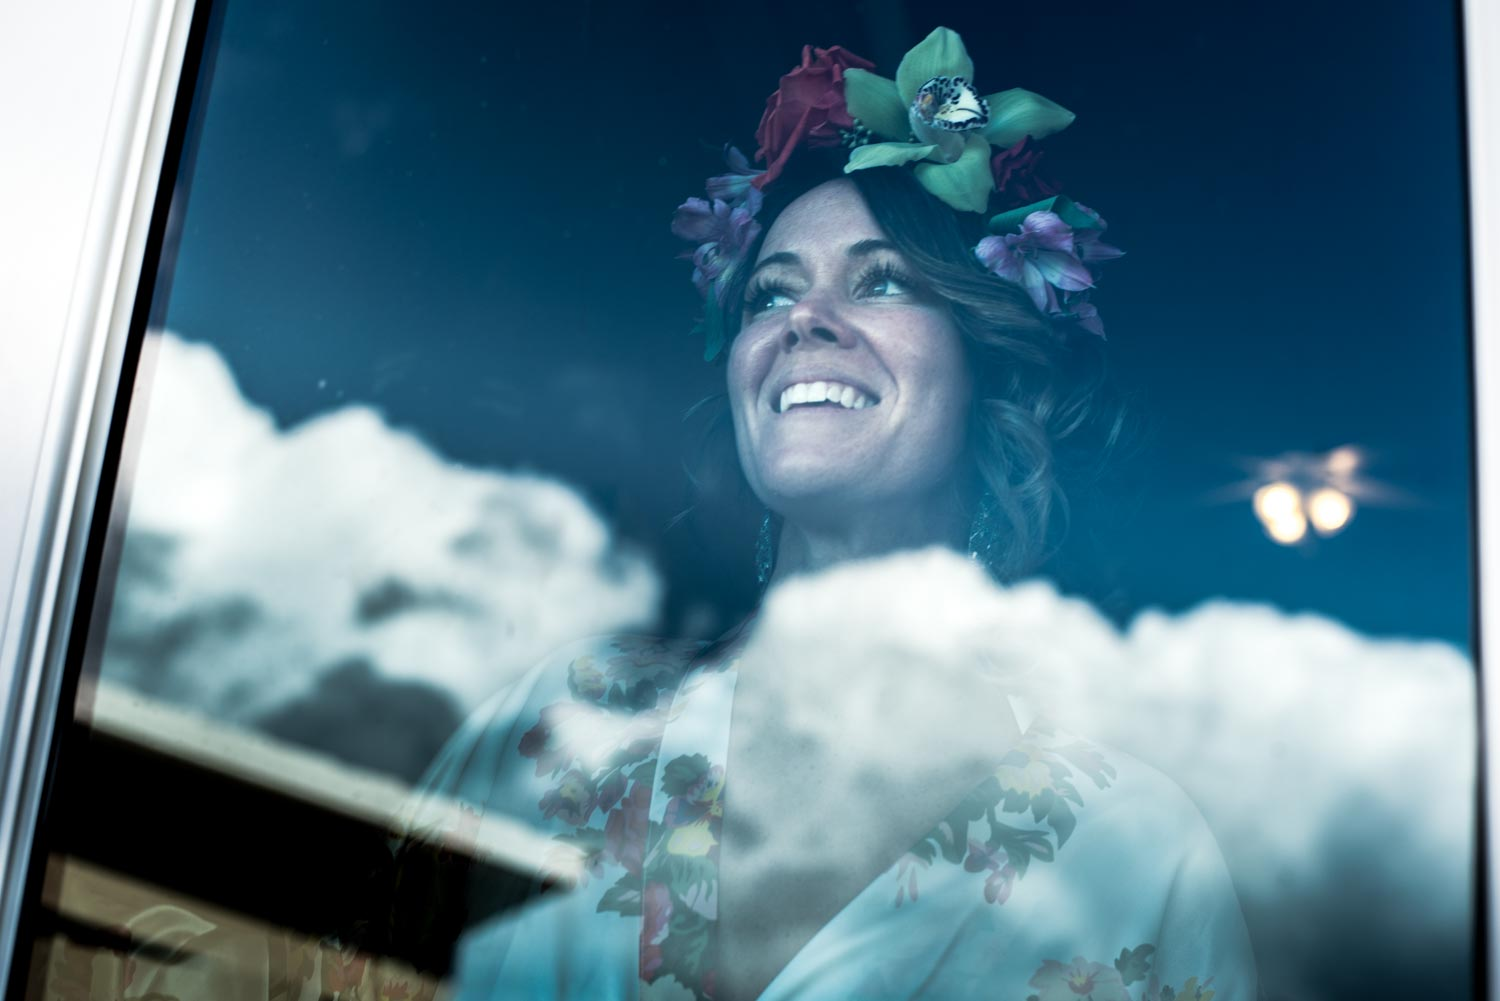 Bride wearing a tropical flower crown looks out of a window the blue sky and clouds are reflected in the glass.